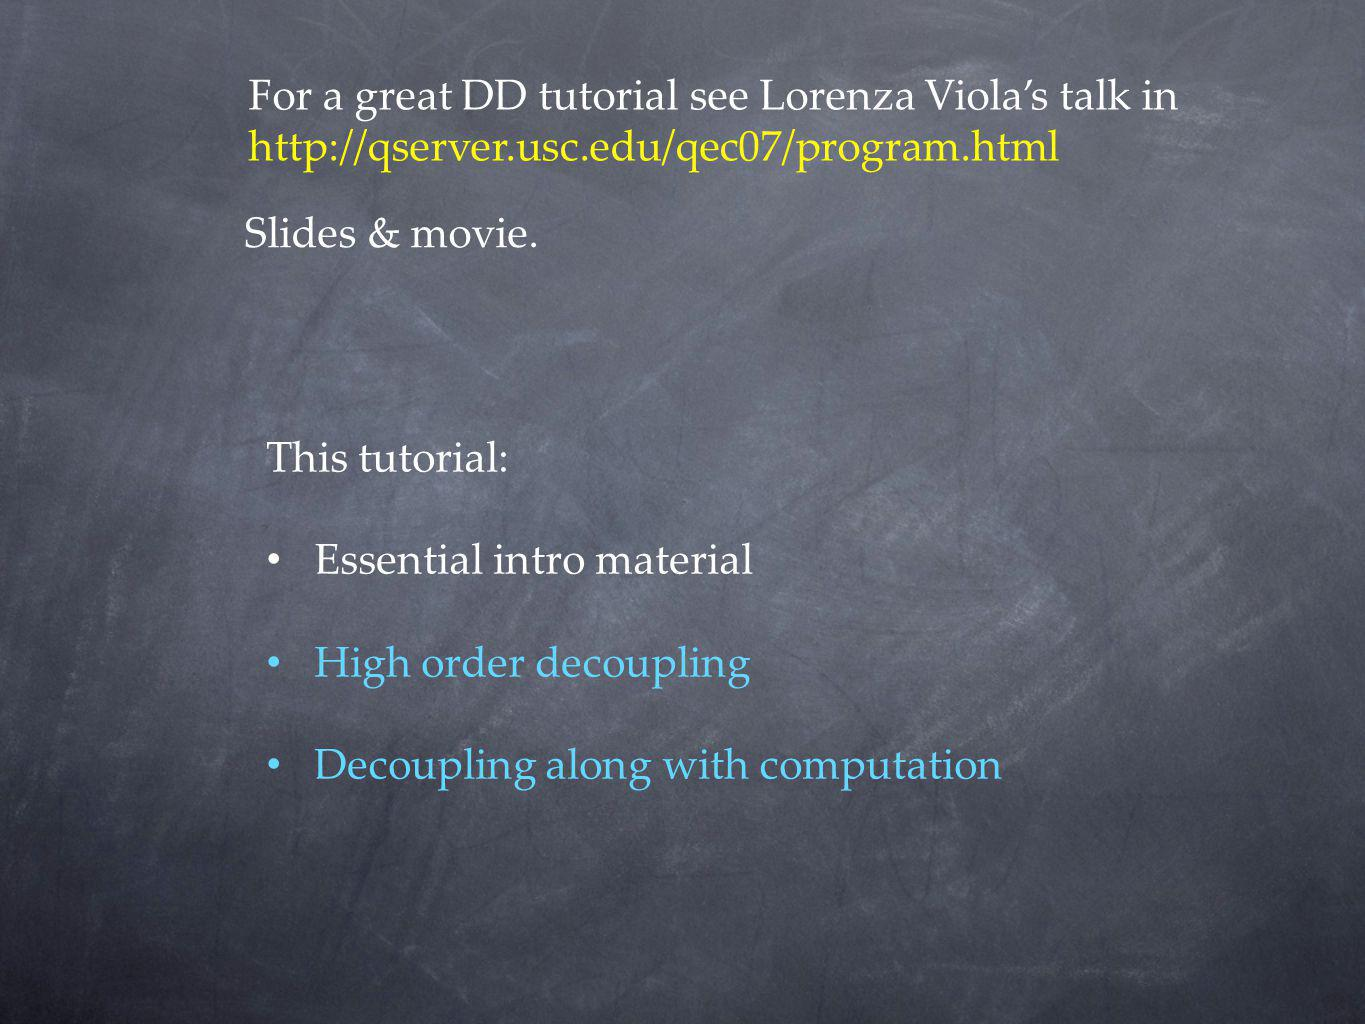 For a great DD tutorial see Lorenza Viola's talk in